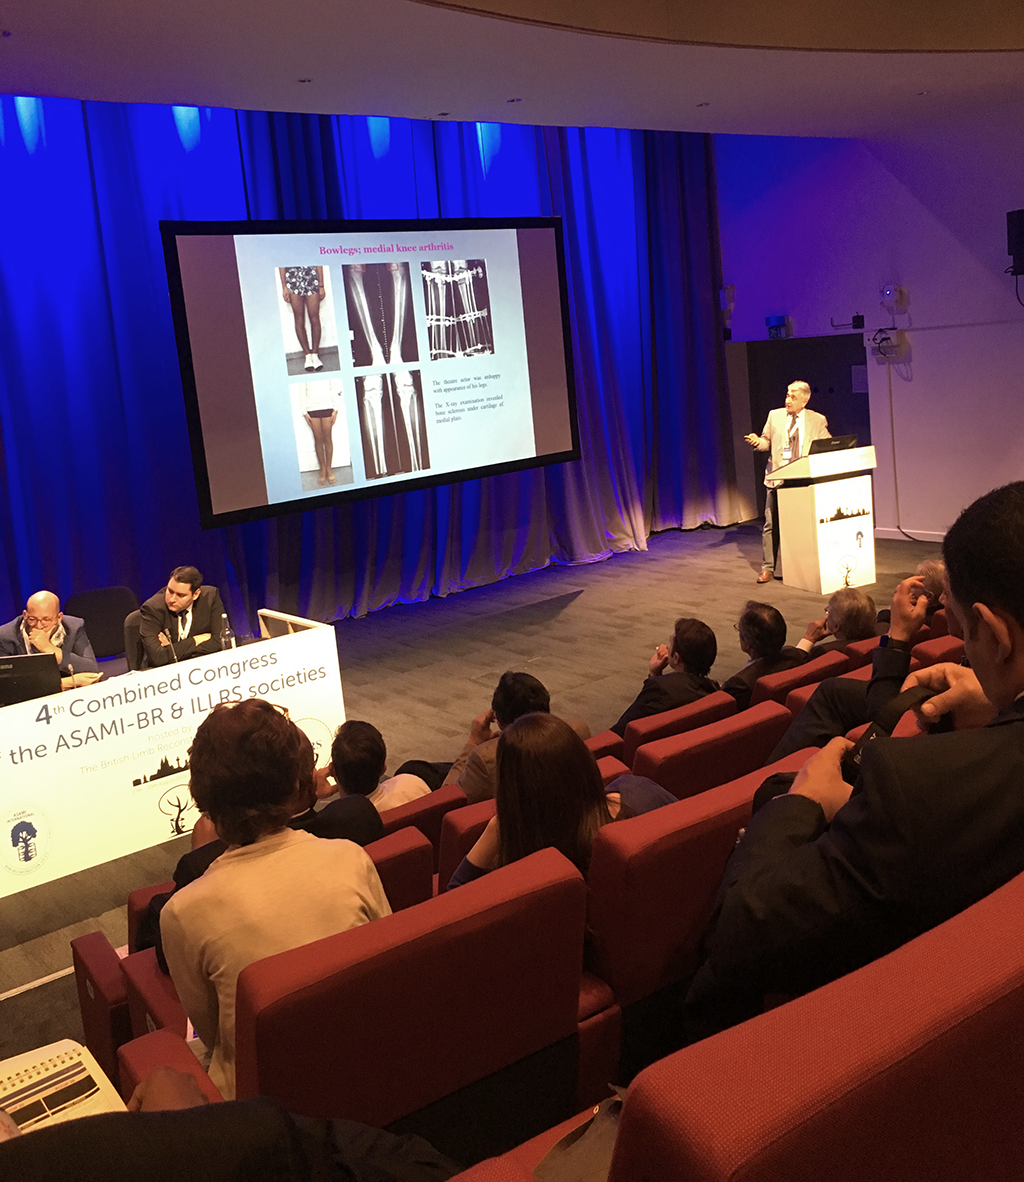 blog-4th-Combined-Congress-of-the-ASAMI-BR-&-ILLRS_2019-junctione-between-orthopedic-and-aesthetic-problems-ycllr